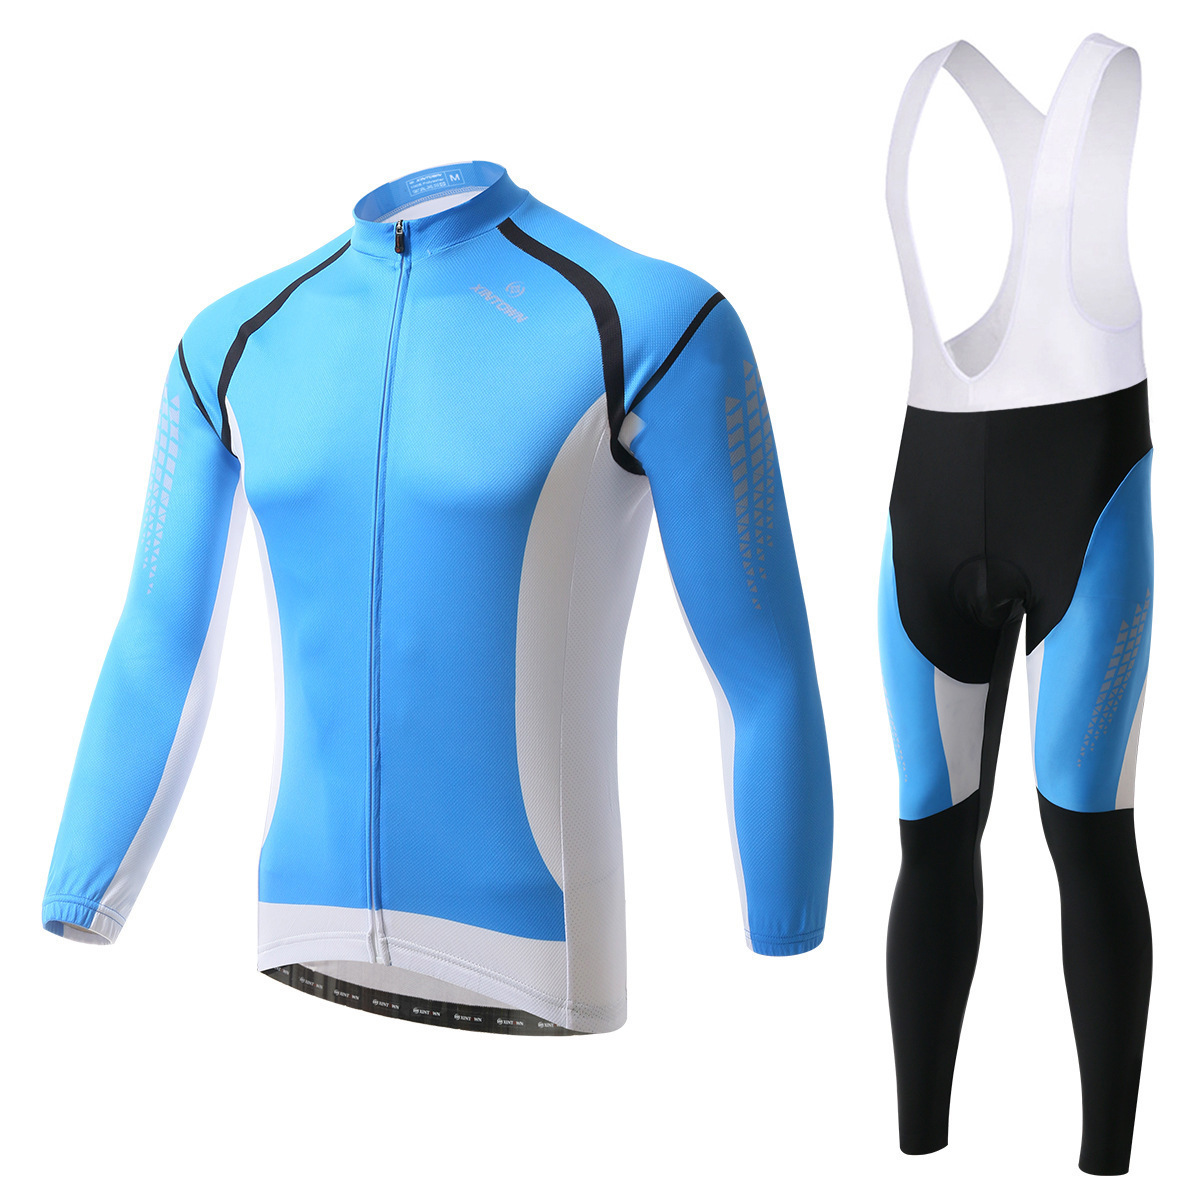 XINTOWN Spring Autumn New Long Sleeve Clothes Mens Cycling Jersey 2018 Bib Pants Set Bike Bicycle Ropa Ciclismo Bike Clothing xintown team mens cycling long sleeve jersey bib pants suit red clothing set ropa ciclismo mtb bike bicycle s 4xl